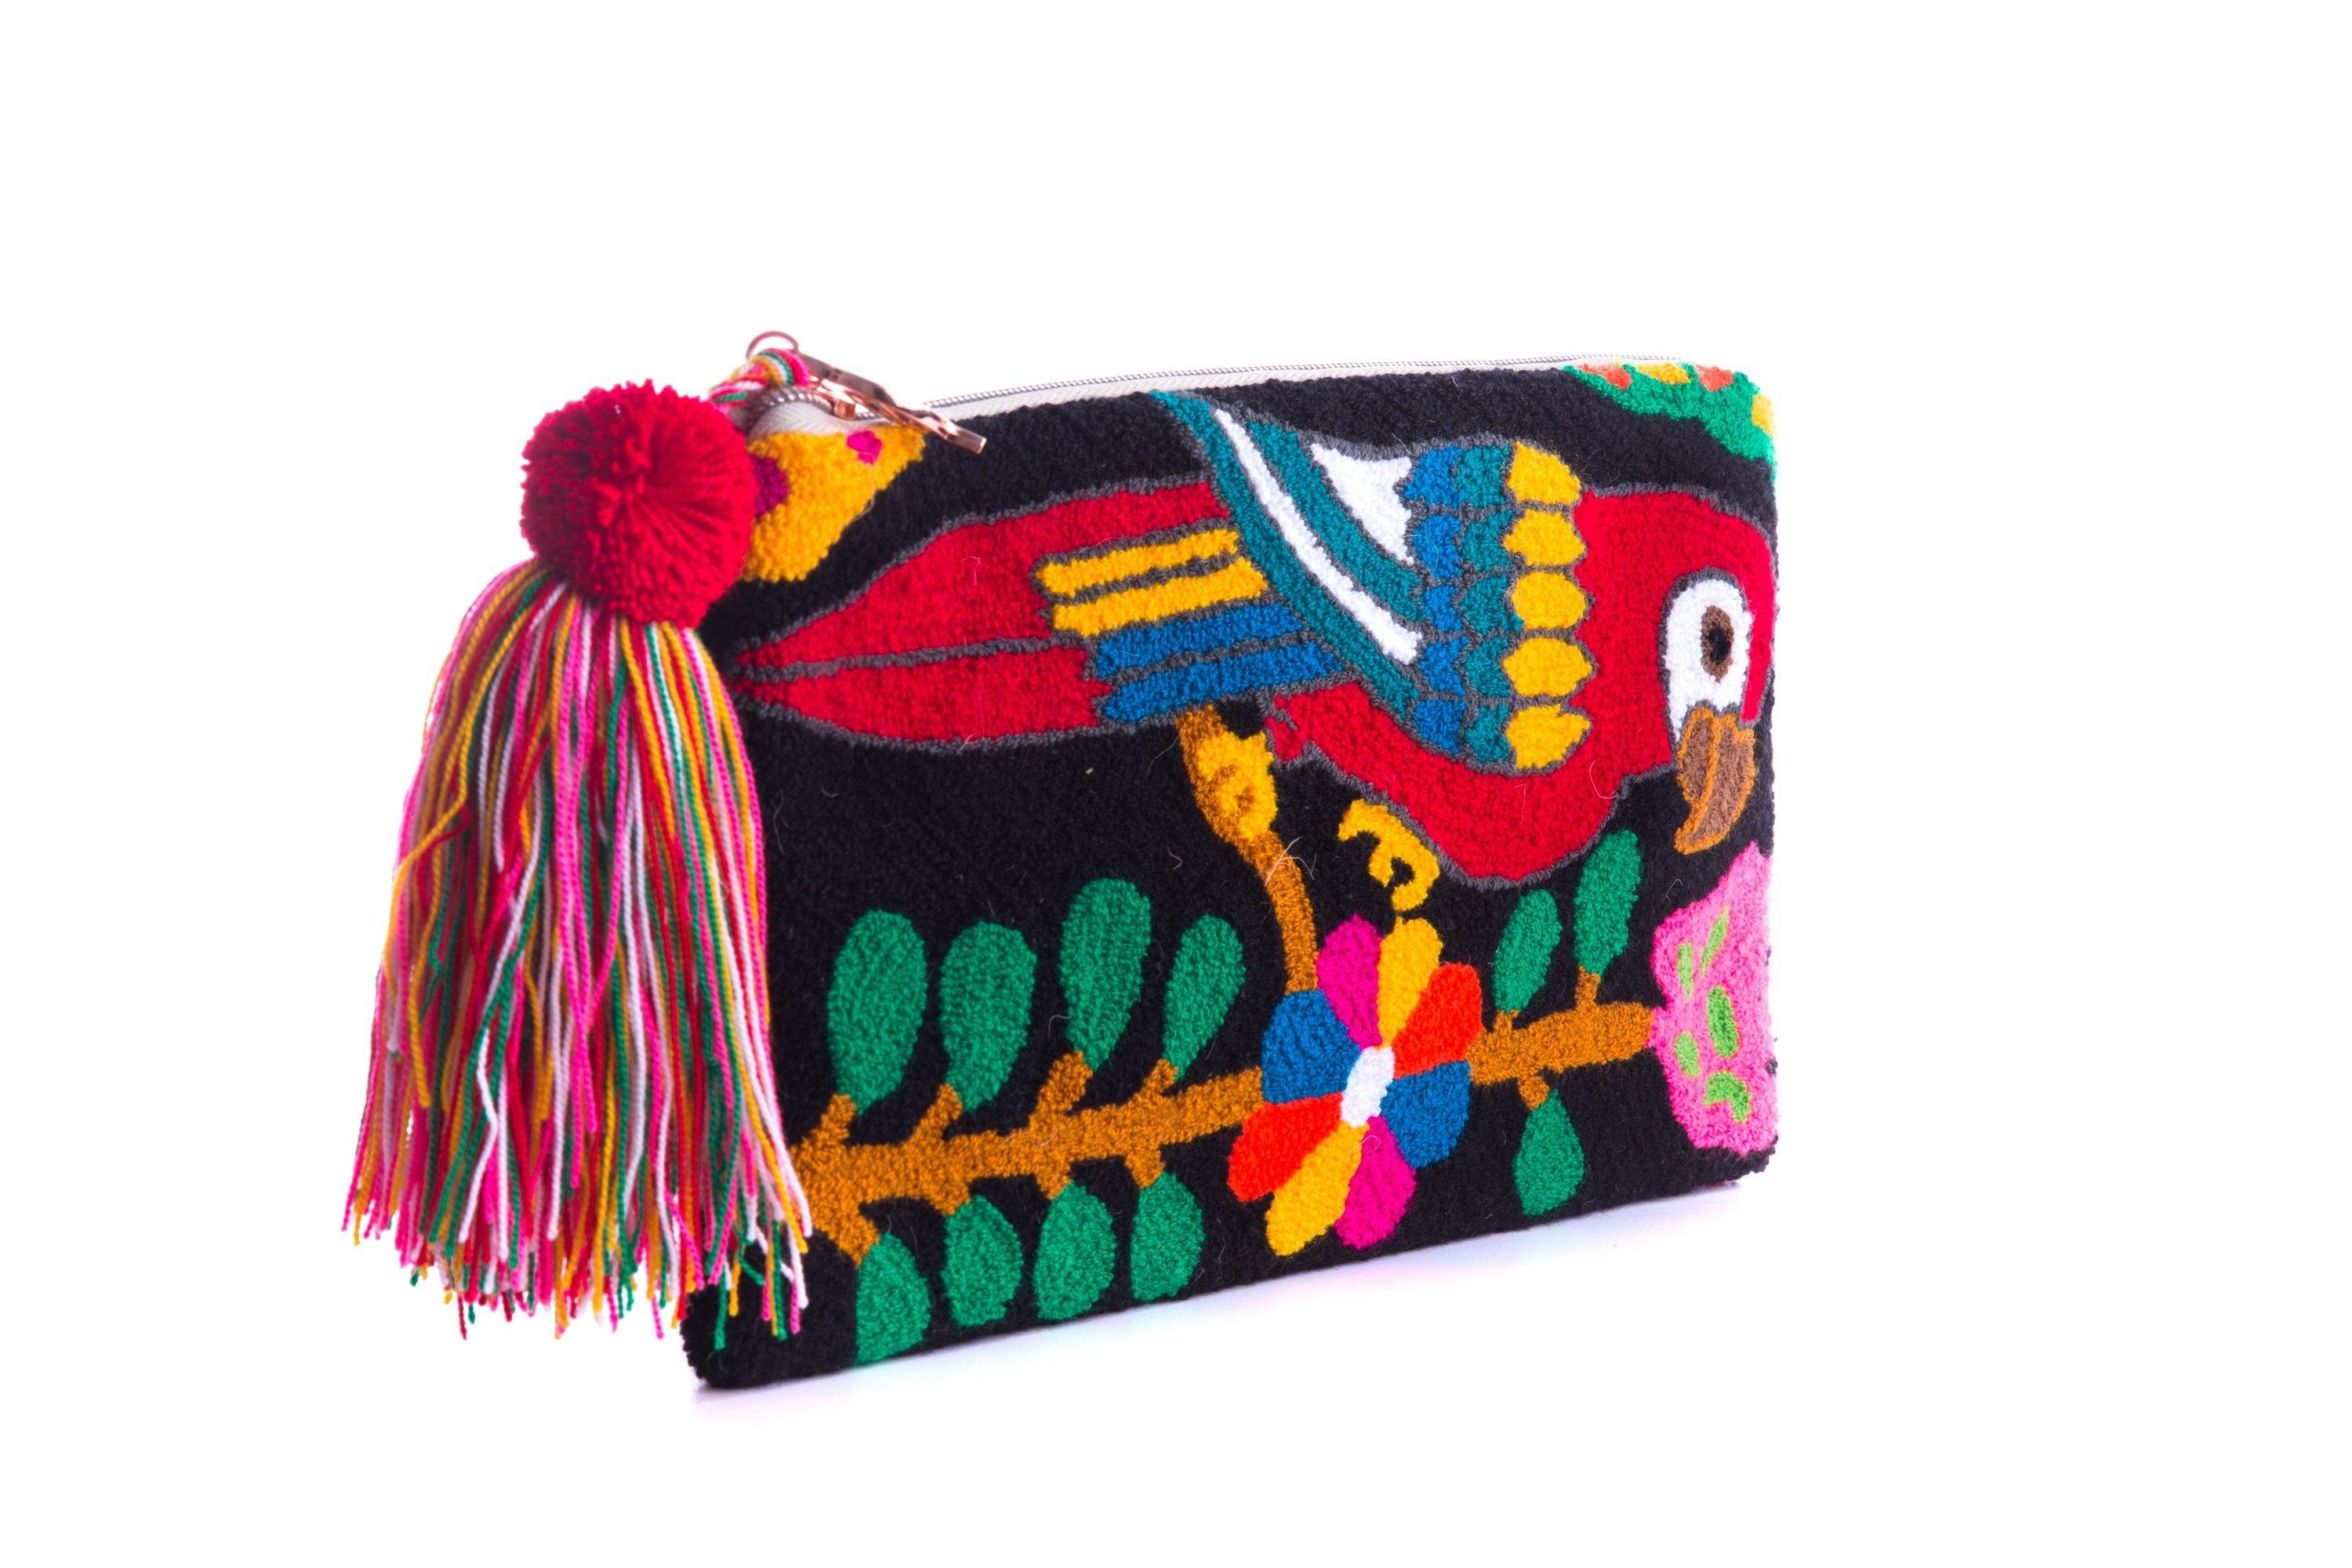 natural-rough-bag-parrot-handrafted-wayuu-cotton-colors-artisanal